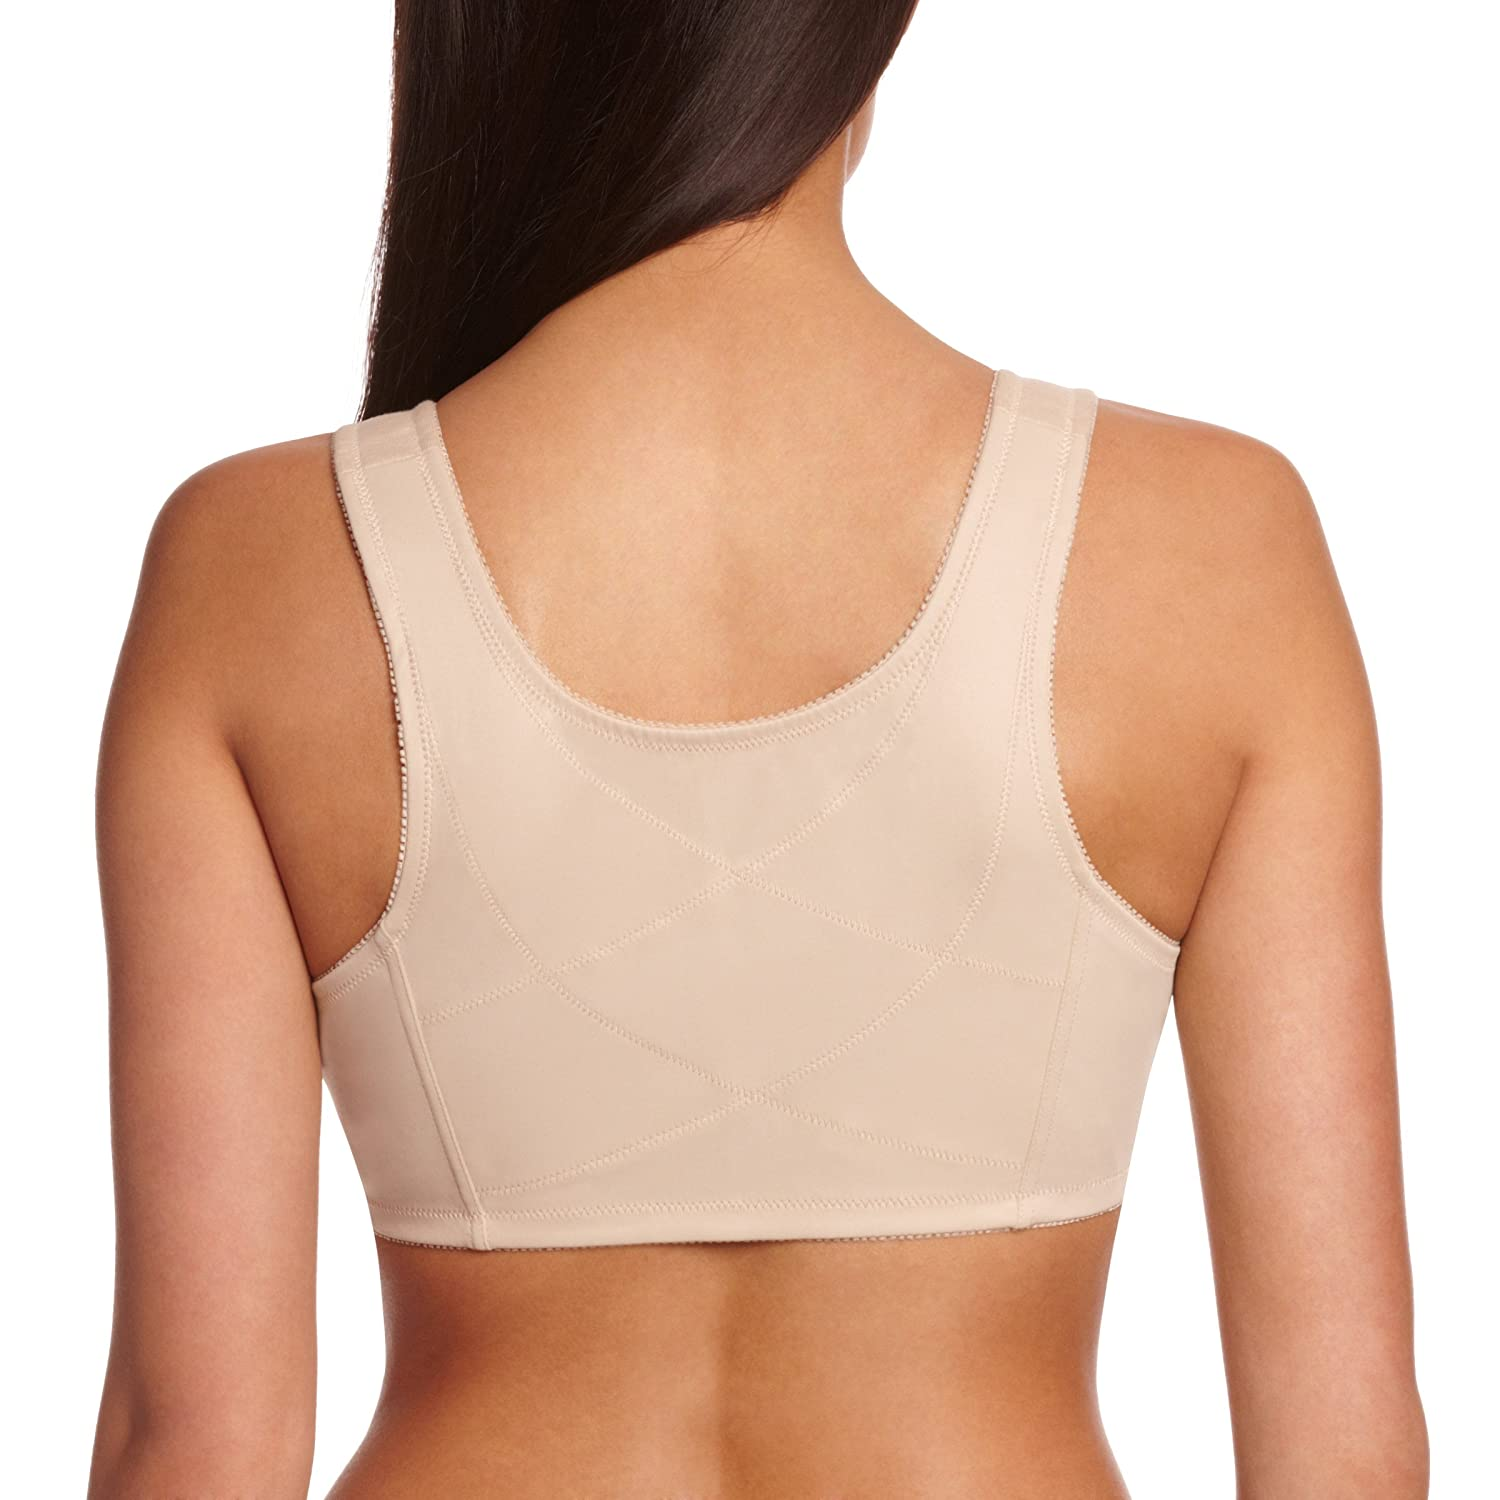 3255a64e97 Bestform 531-43 Women s Soft Cups Nude Non-Wired Full Cup Bra 44B at Amazon  Women s Clothing store